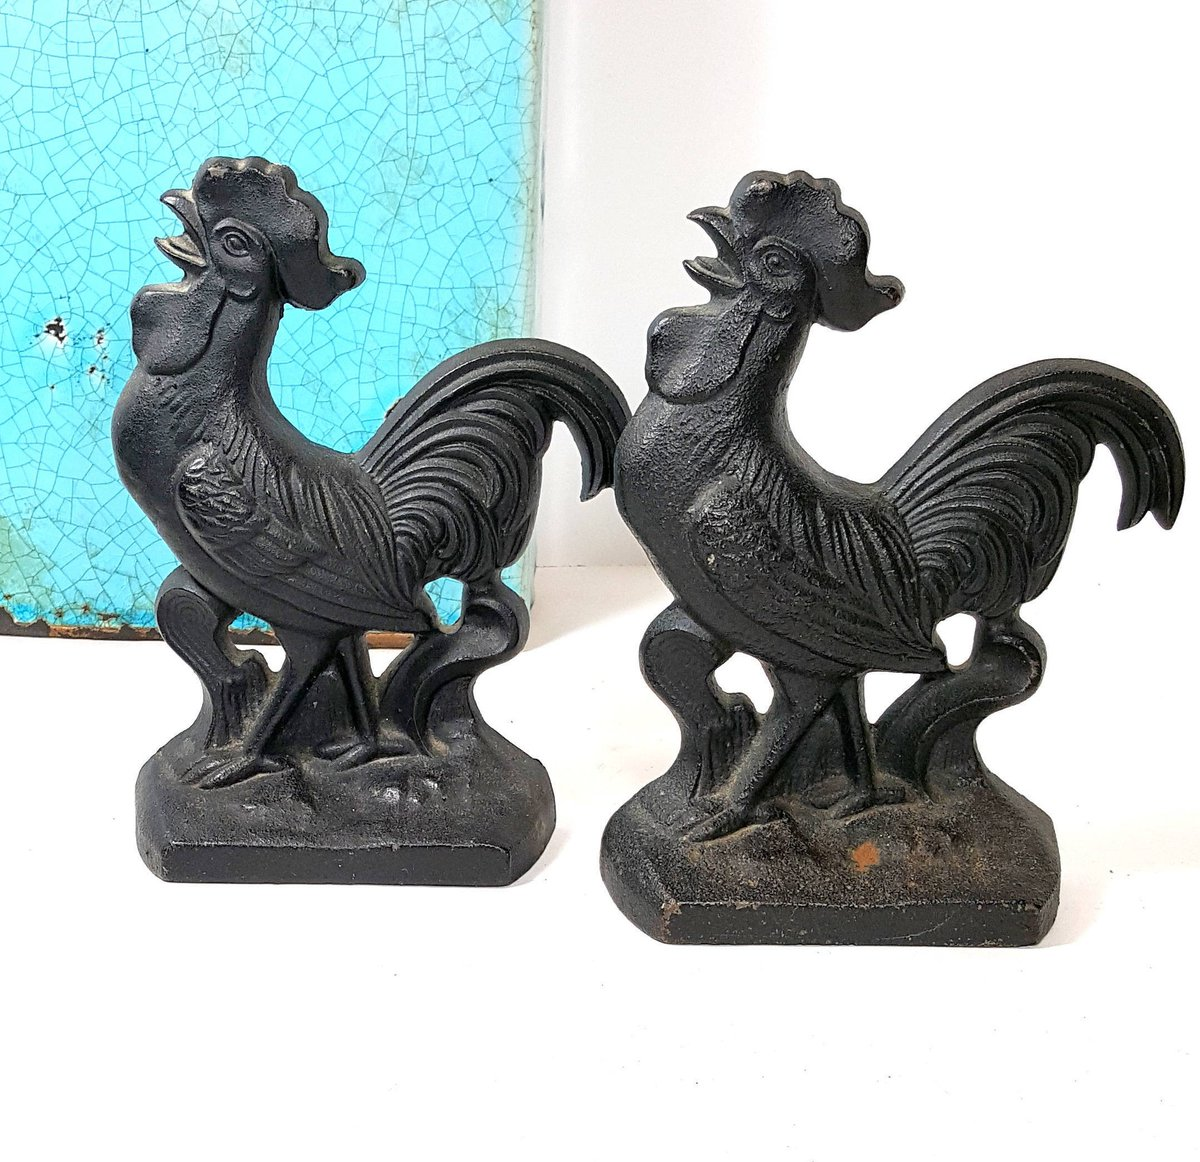 2 VINTAGE CAST IRON Chicken Bookends Mid Century Rooster Bookends Farmhou…  http:// etsy.me/2wls9tl  &nbsp;   #Etsy #MidCentury <br>http://pic.twitter.com/keoqt4INxK